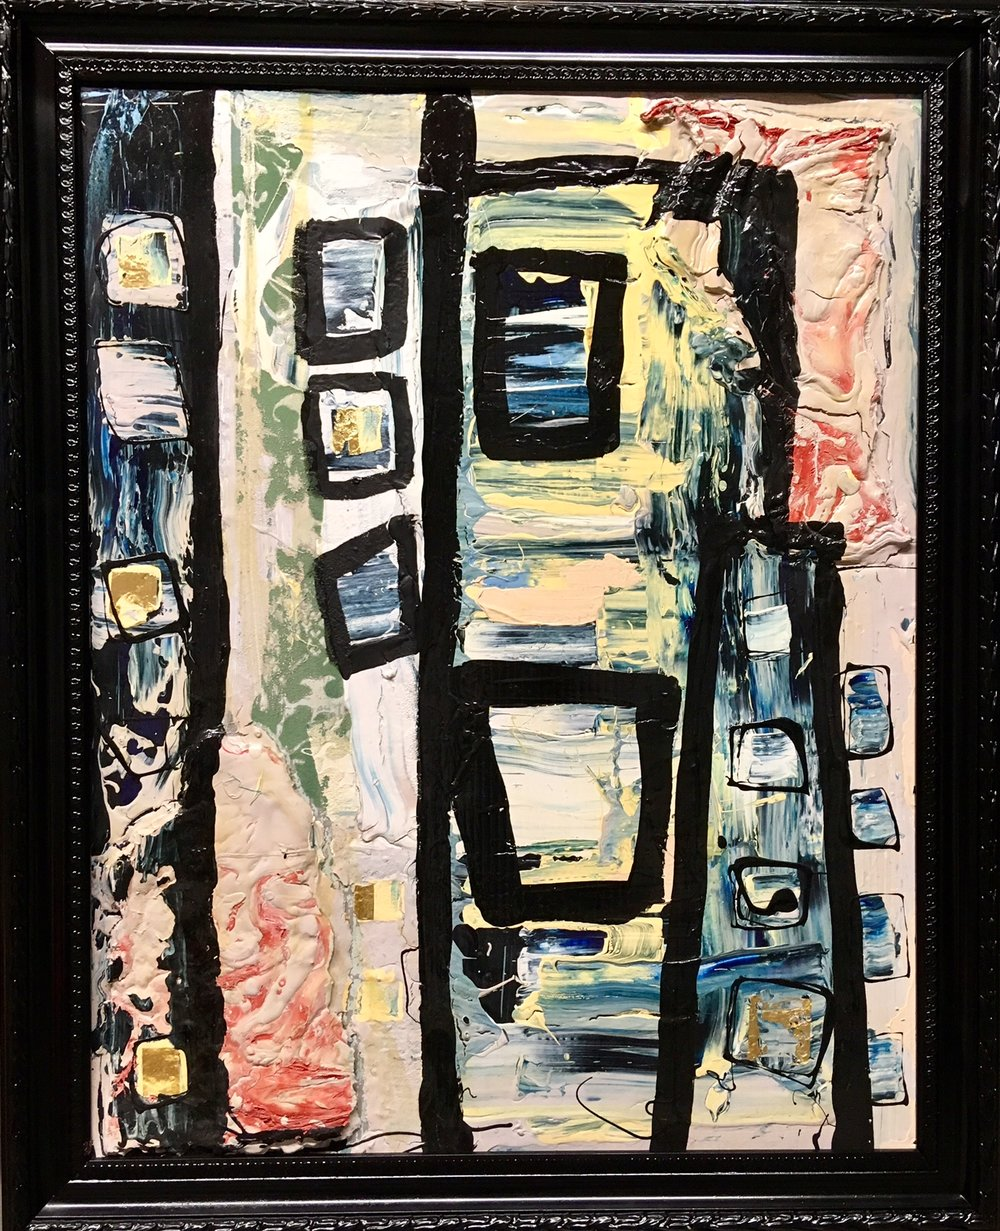 Untitled $1,025 - ACRYLIC, OIL, LATEX & WALLPAPER OF FRAMED BOARD32x25